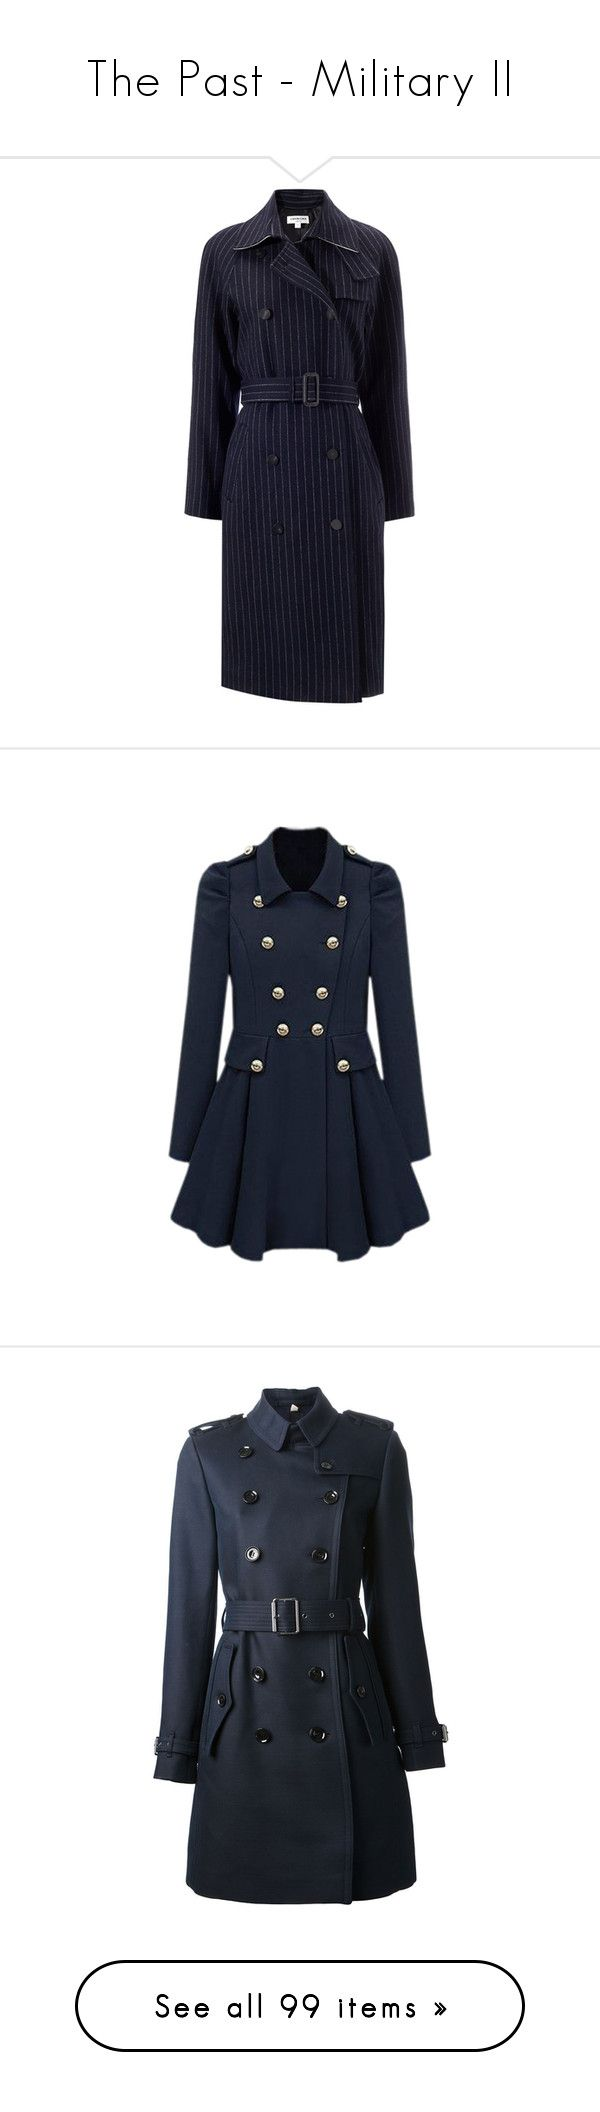 """The Past - Military II"" by xstyx ❤ liked on Polyvore featuring outerwear, coats, coats & jackets, jackets, navy, sports coat, navy sport coat, navy blue sport coat, double-breasted trench coats and blue sports coat"